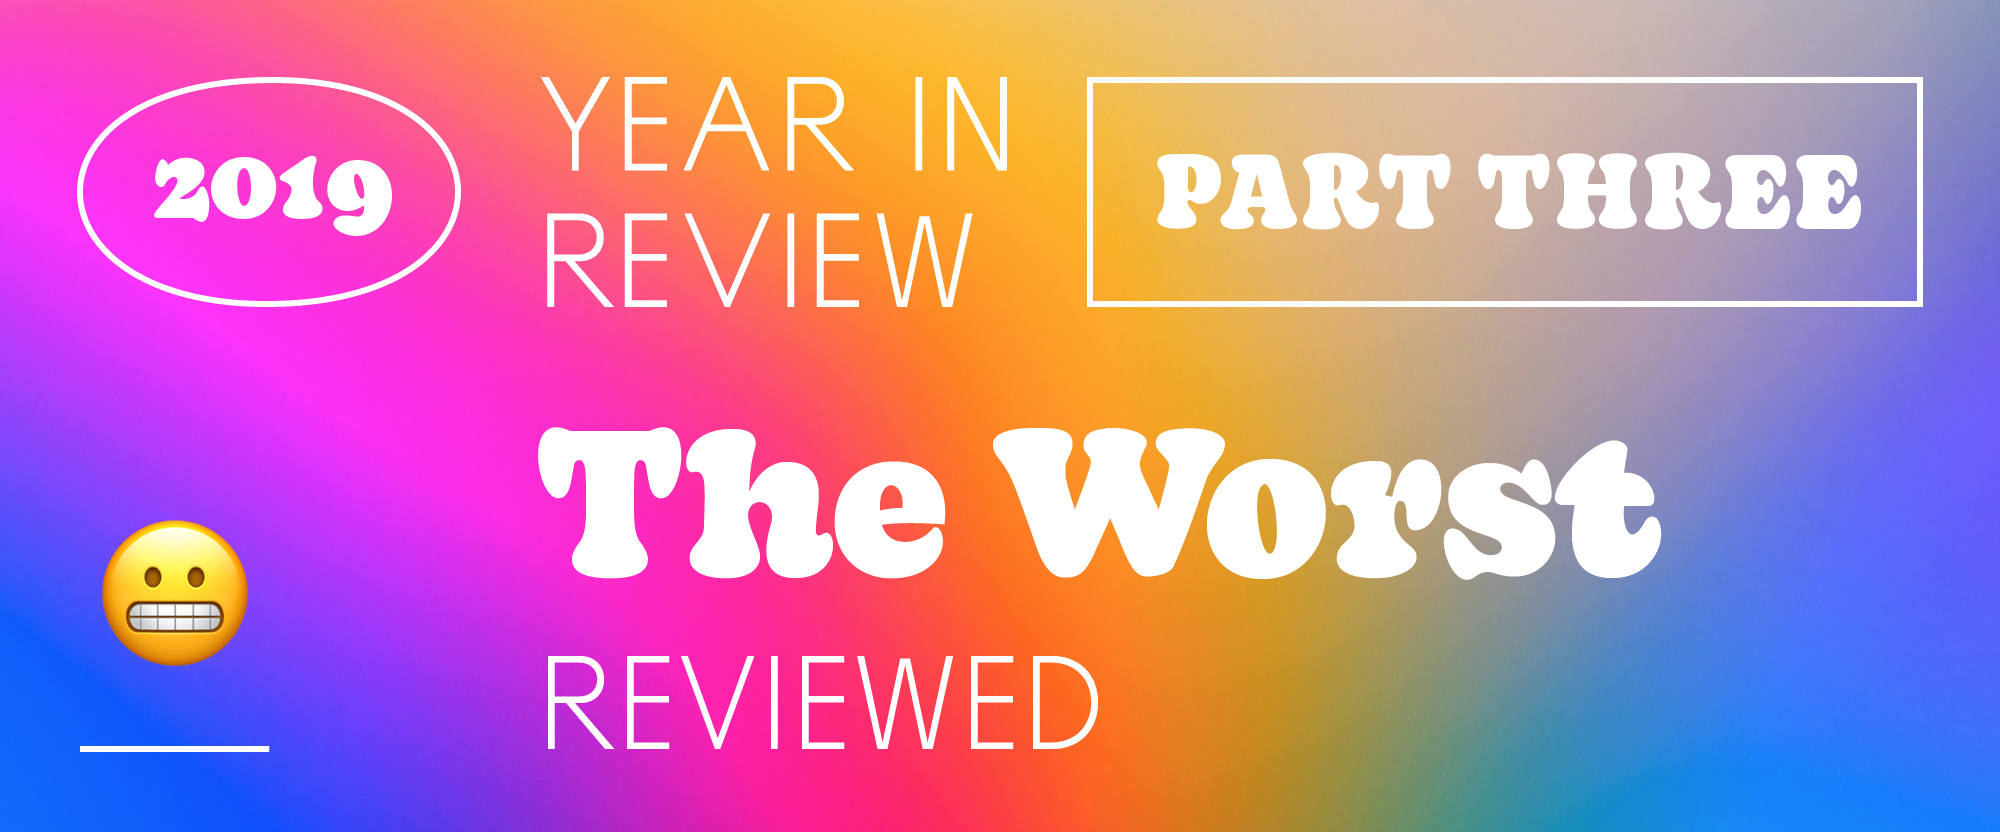 The Best and Worst Identities of 2019, Part 3: The Worst Reviewed